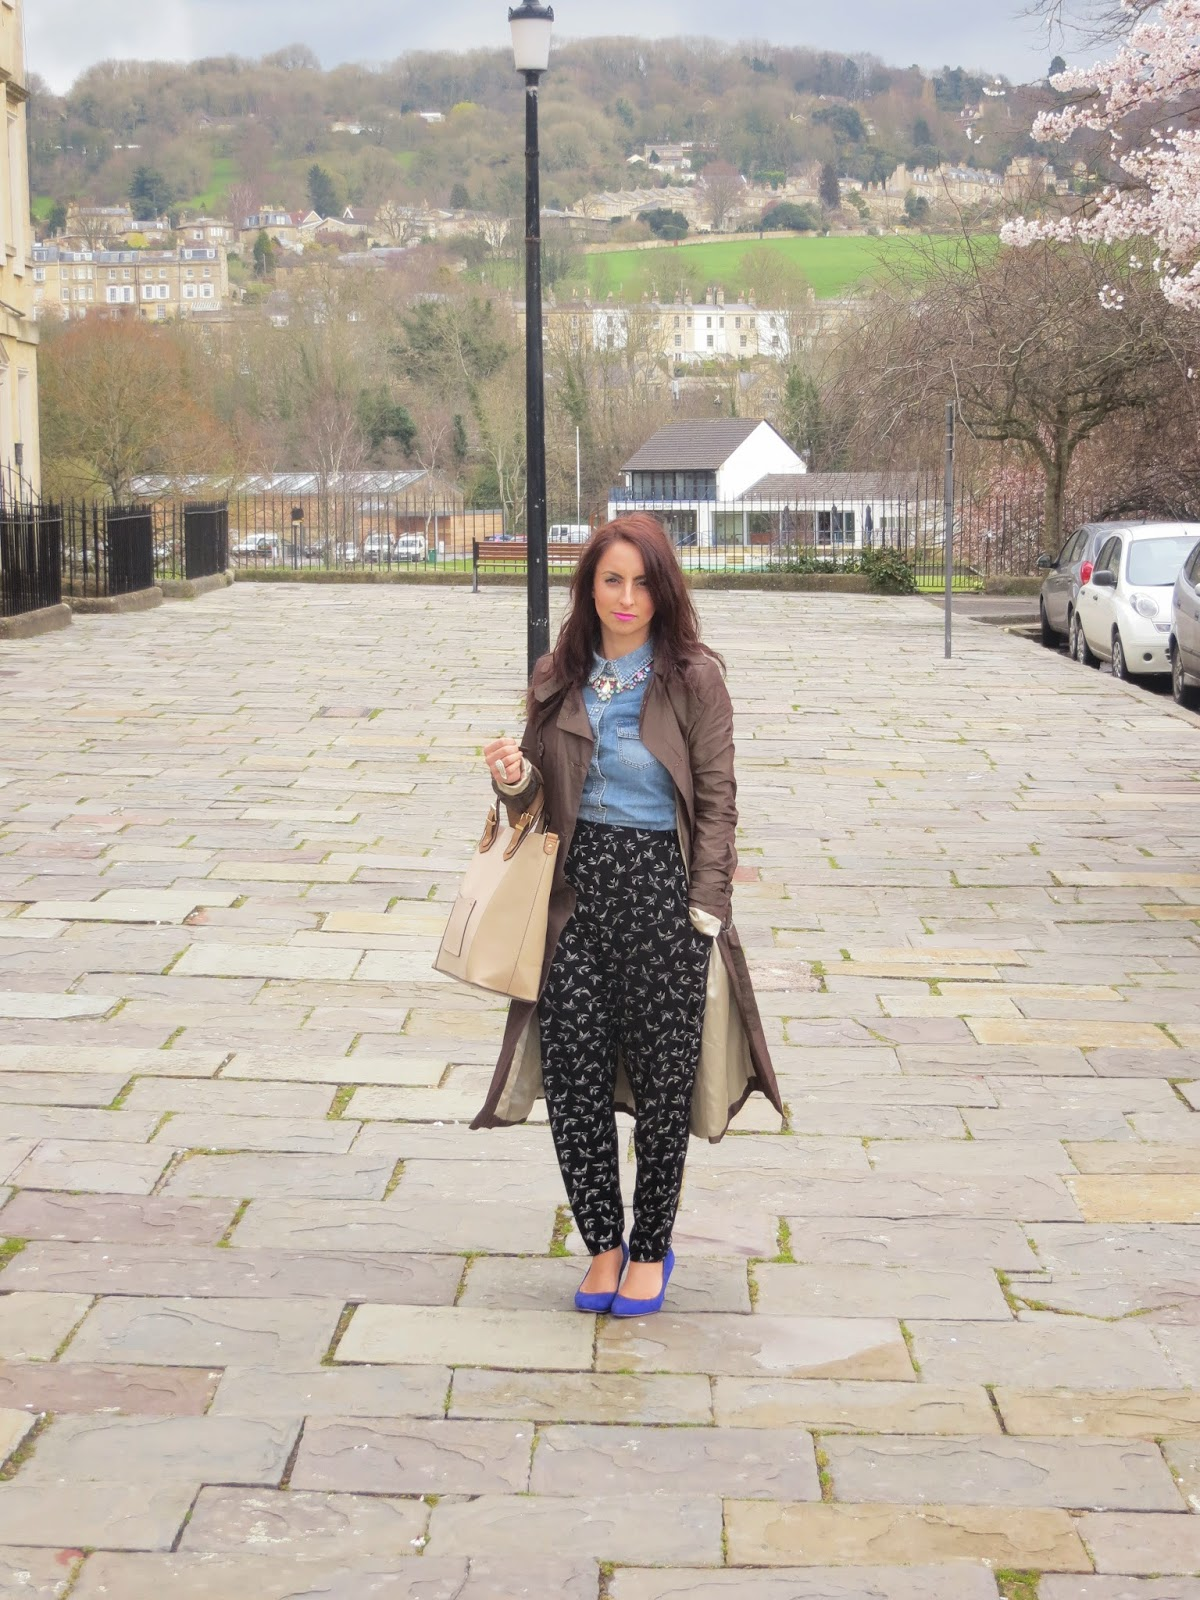 Topshop, New look, Accessorize, Bag, H&M, Coat, Trousers, Shoes, statement necklace, How to, OOTD, outfit, fashion blogger, Bath